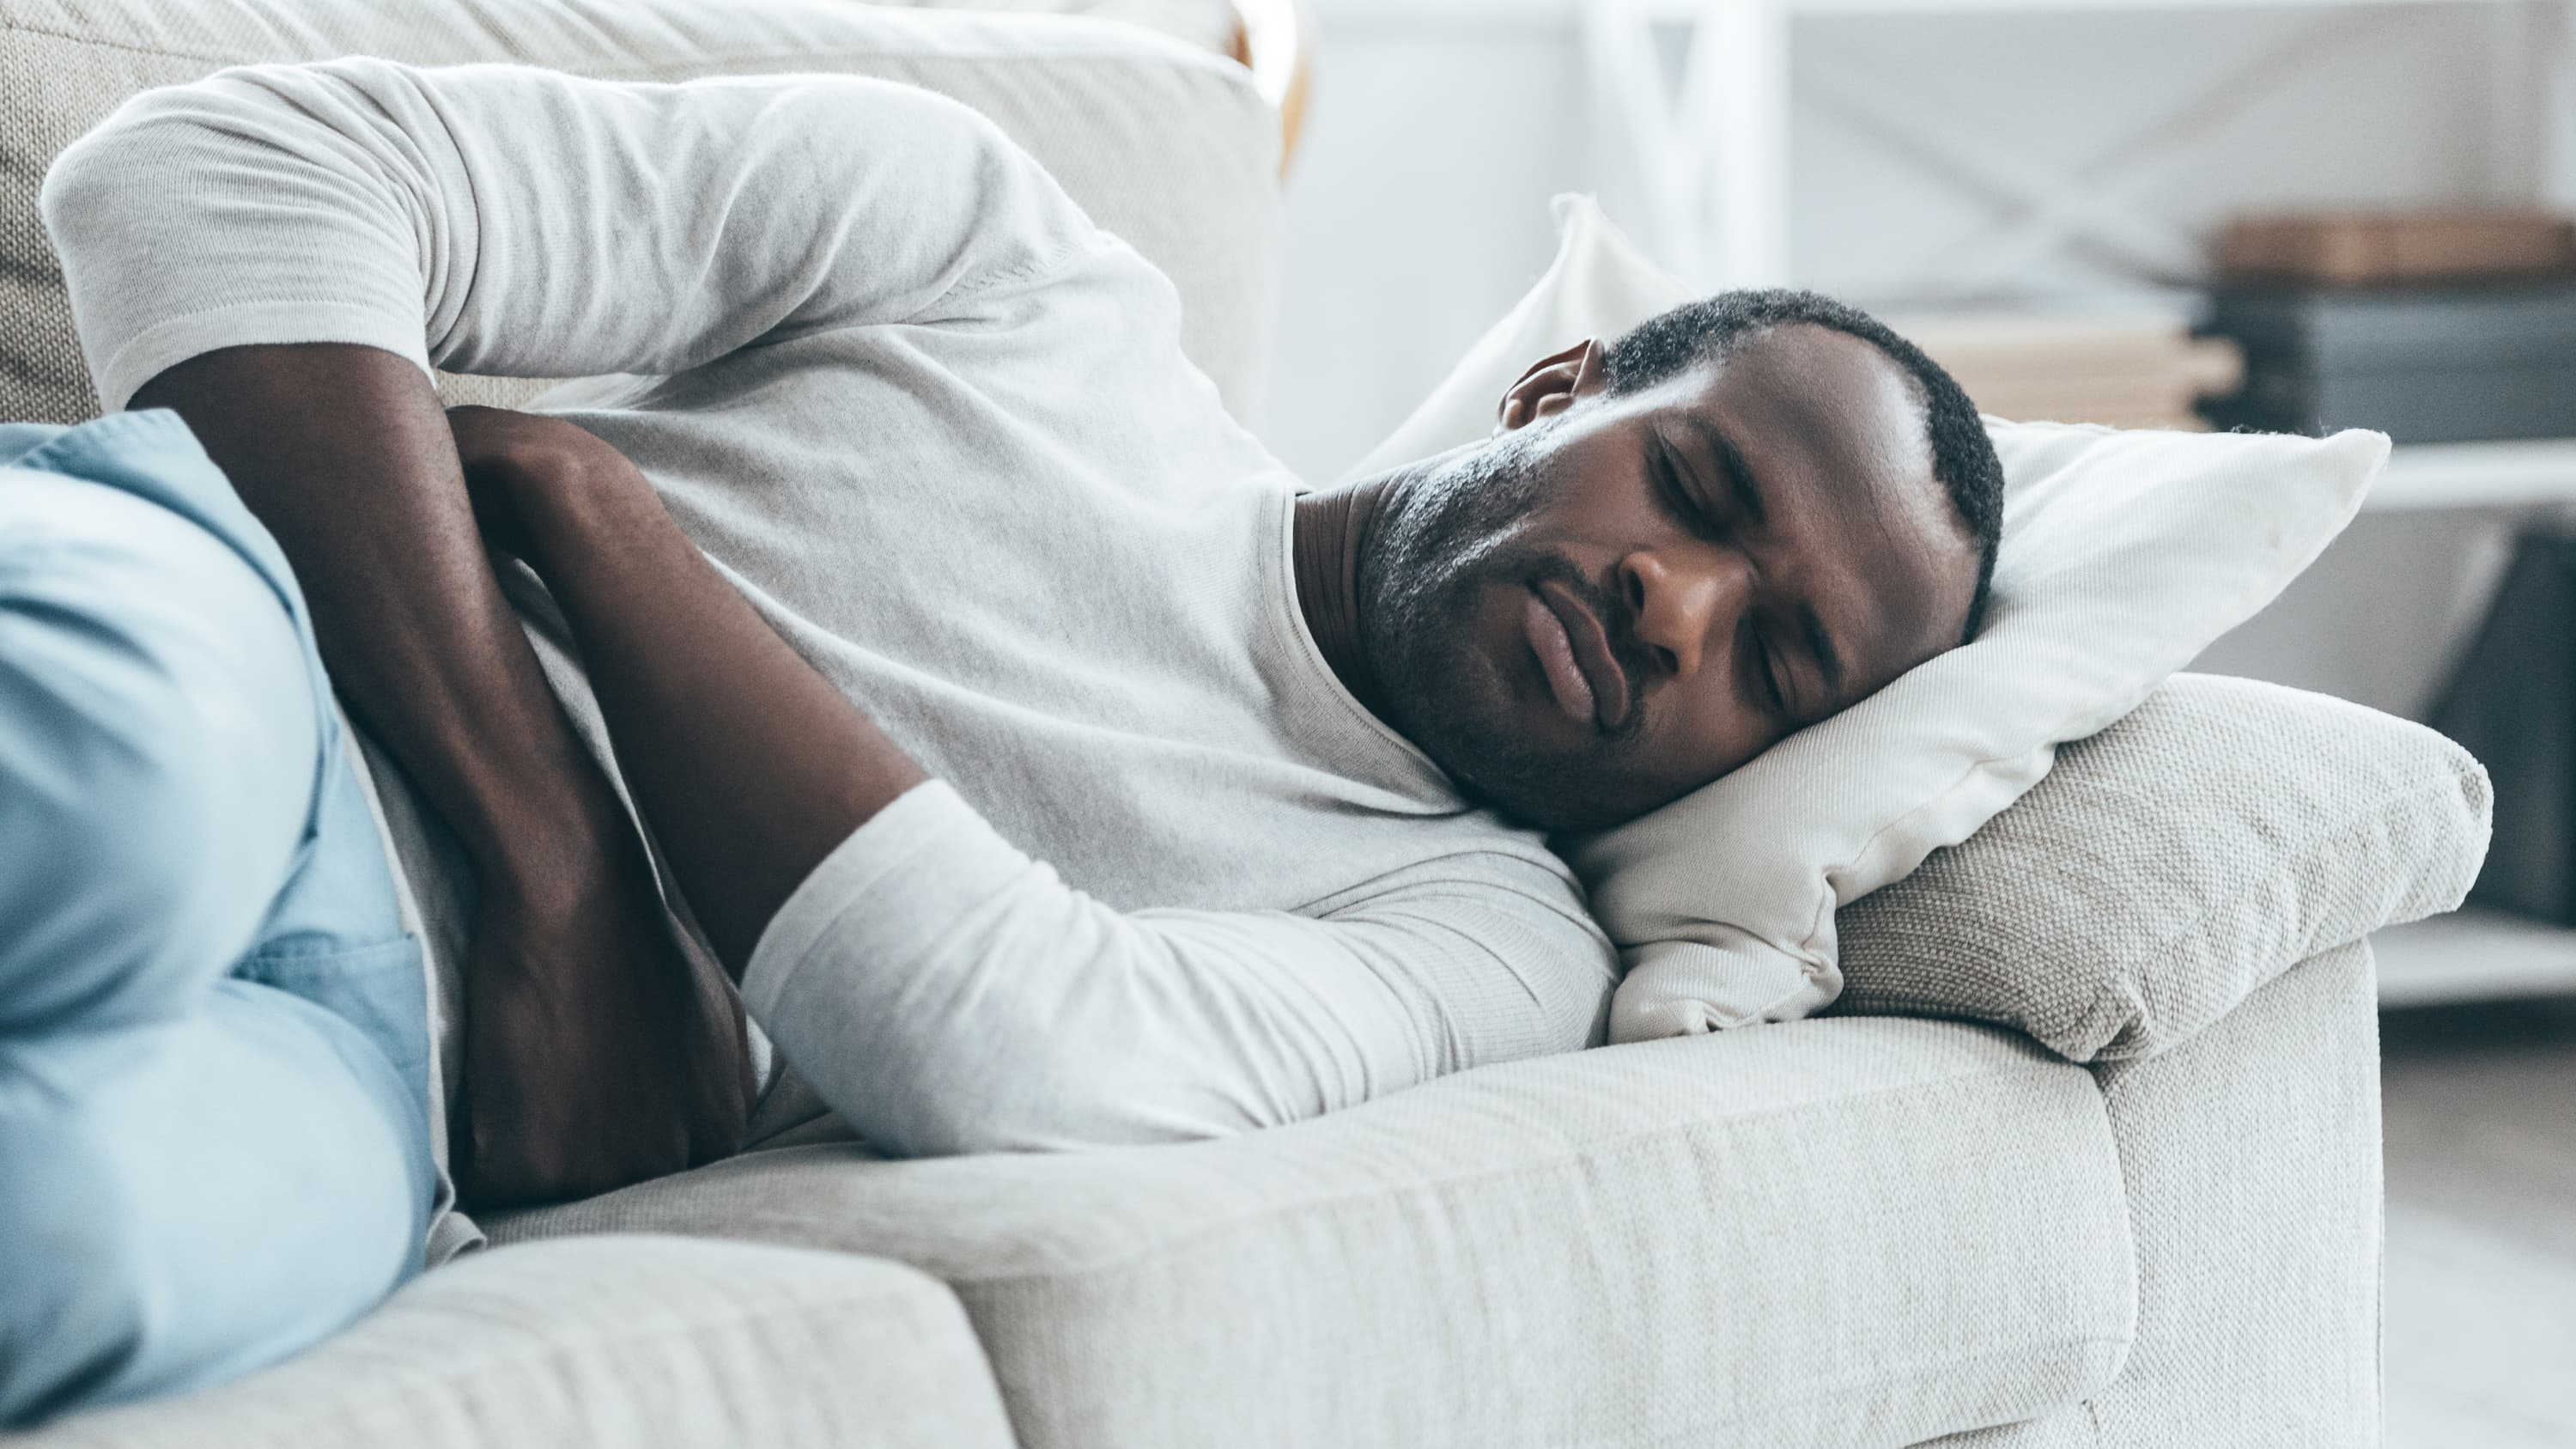 A man lays on a white couch holding his stomach possibly before a diagnosis of pancreatic cancer.